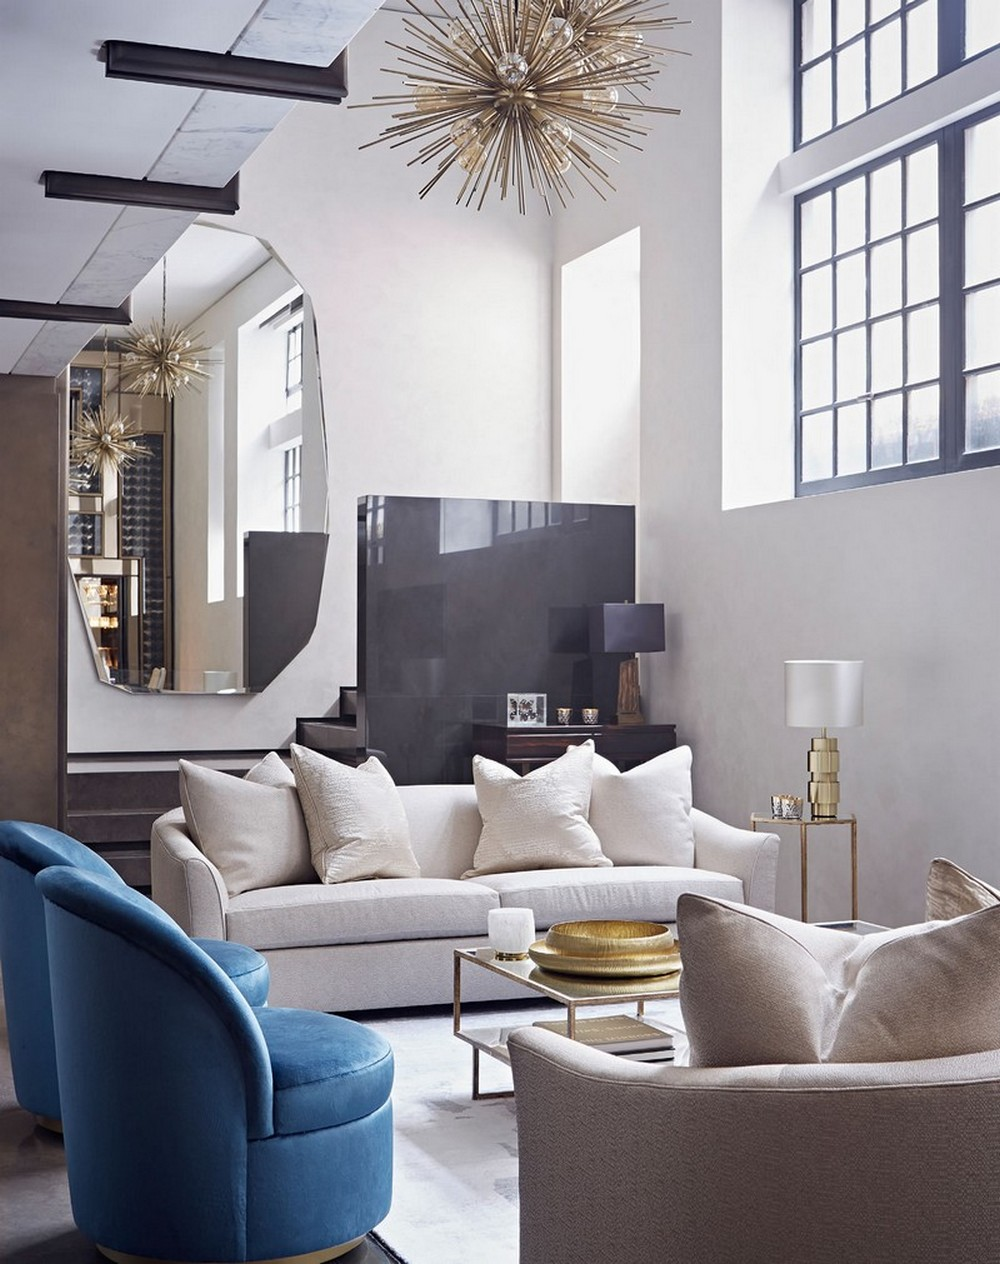 Best Interior Designers: See Who's In This Year's Top 100 (Part II) best interior designers Best Interior Designers: See Who's In This Year's Top 100 (Part II) Best Interior Designers See Whos In This Years Top 100 Part II 38